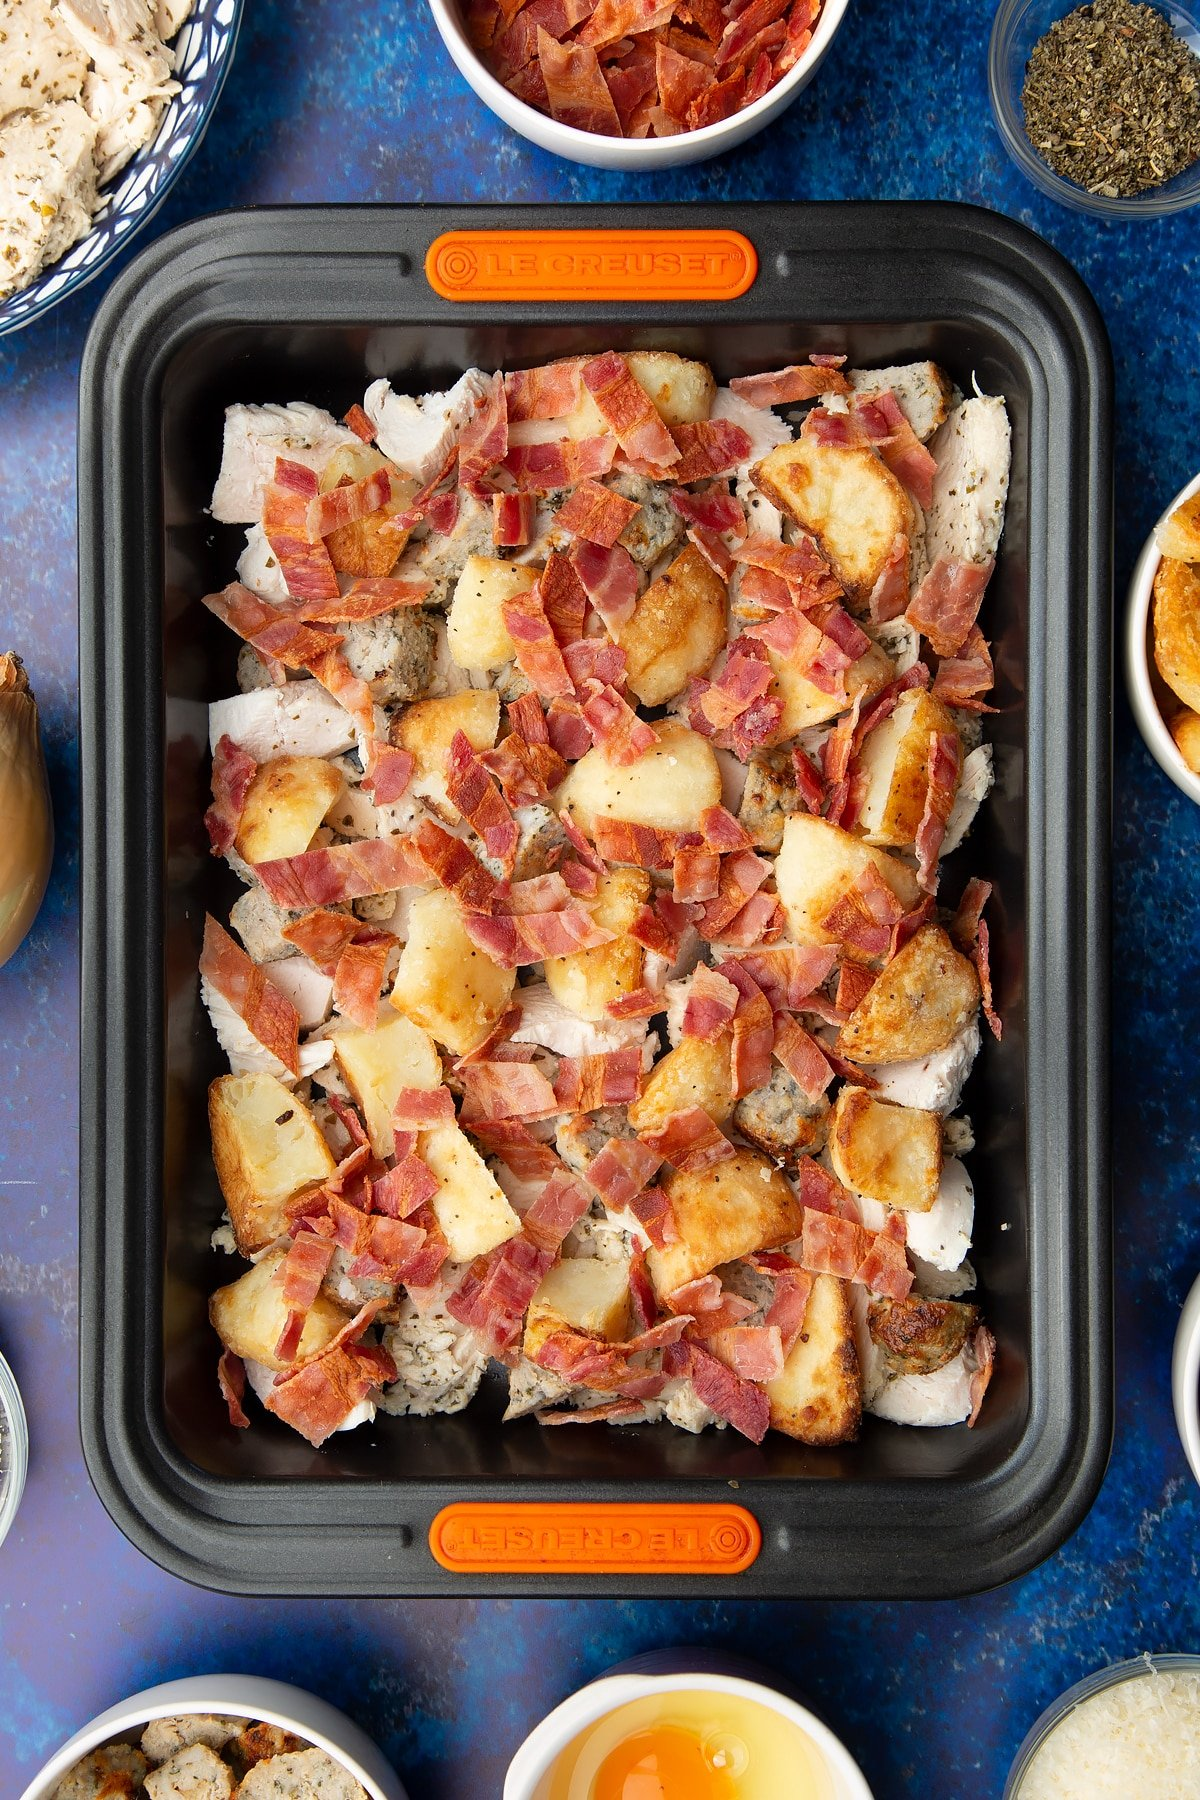 Chopped cooked turkey, stuffing, bacon and roast potatoes in a roasting dish. Ingredients to make a leftover Christmas dinner pie surround the tray.